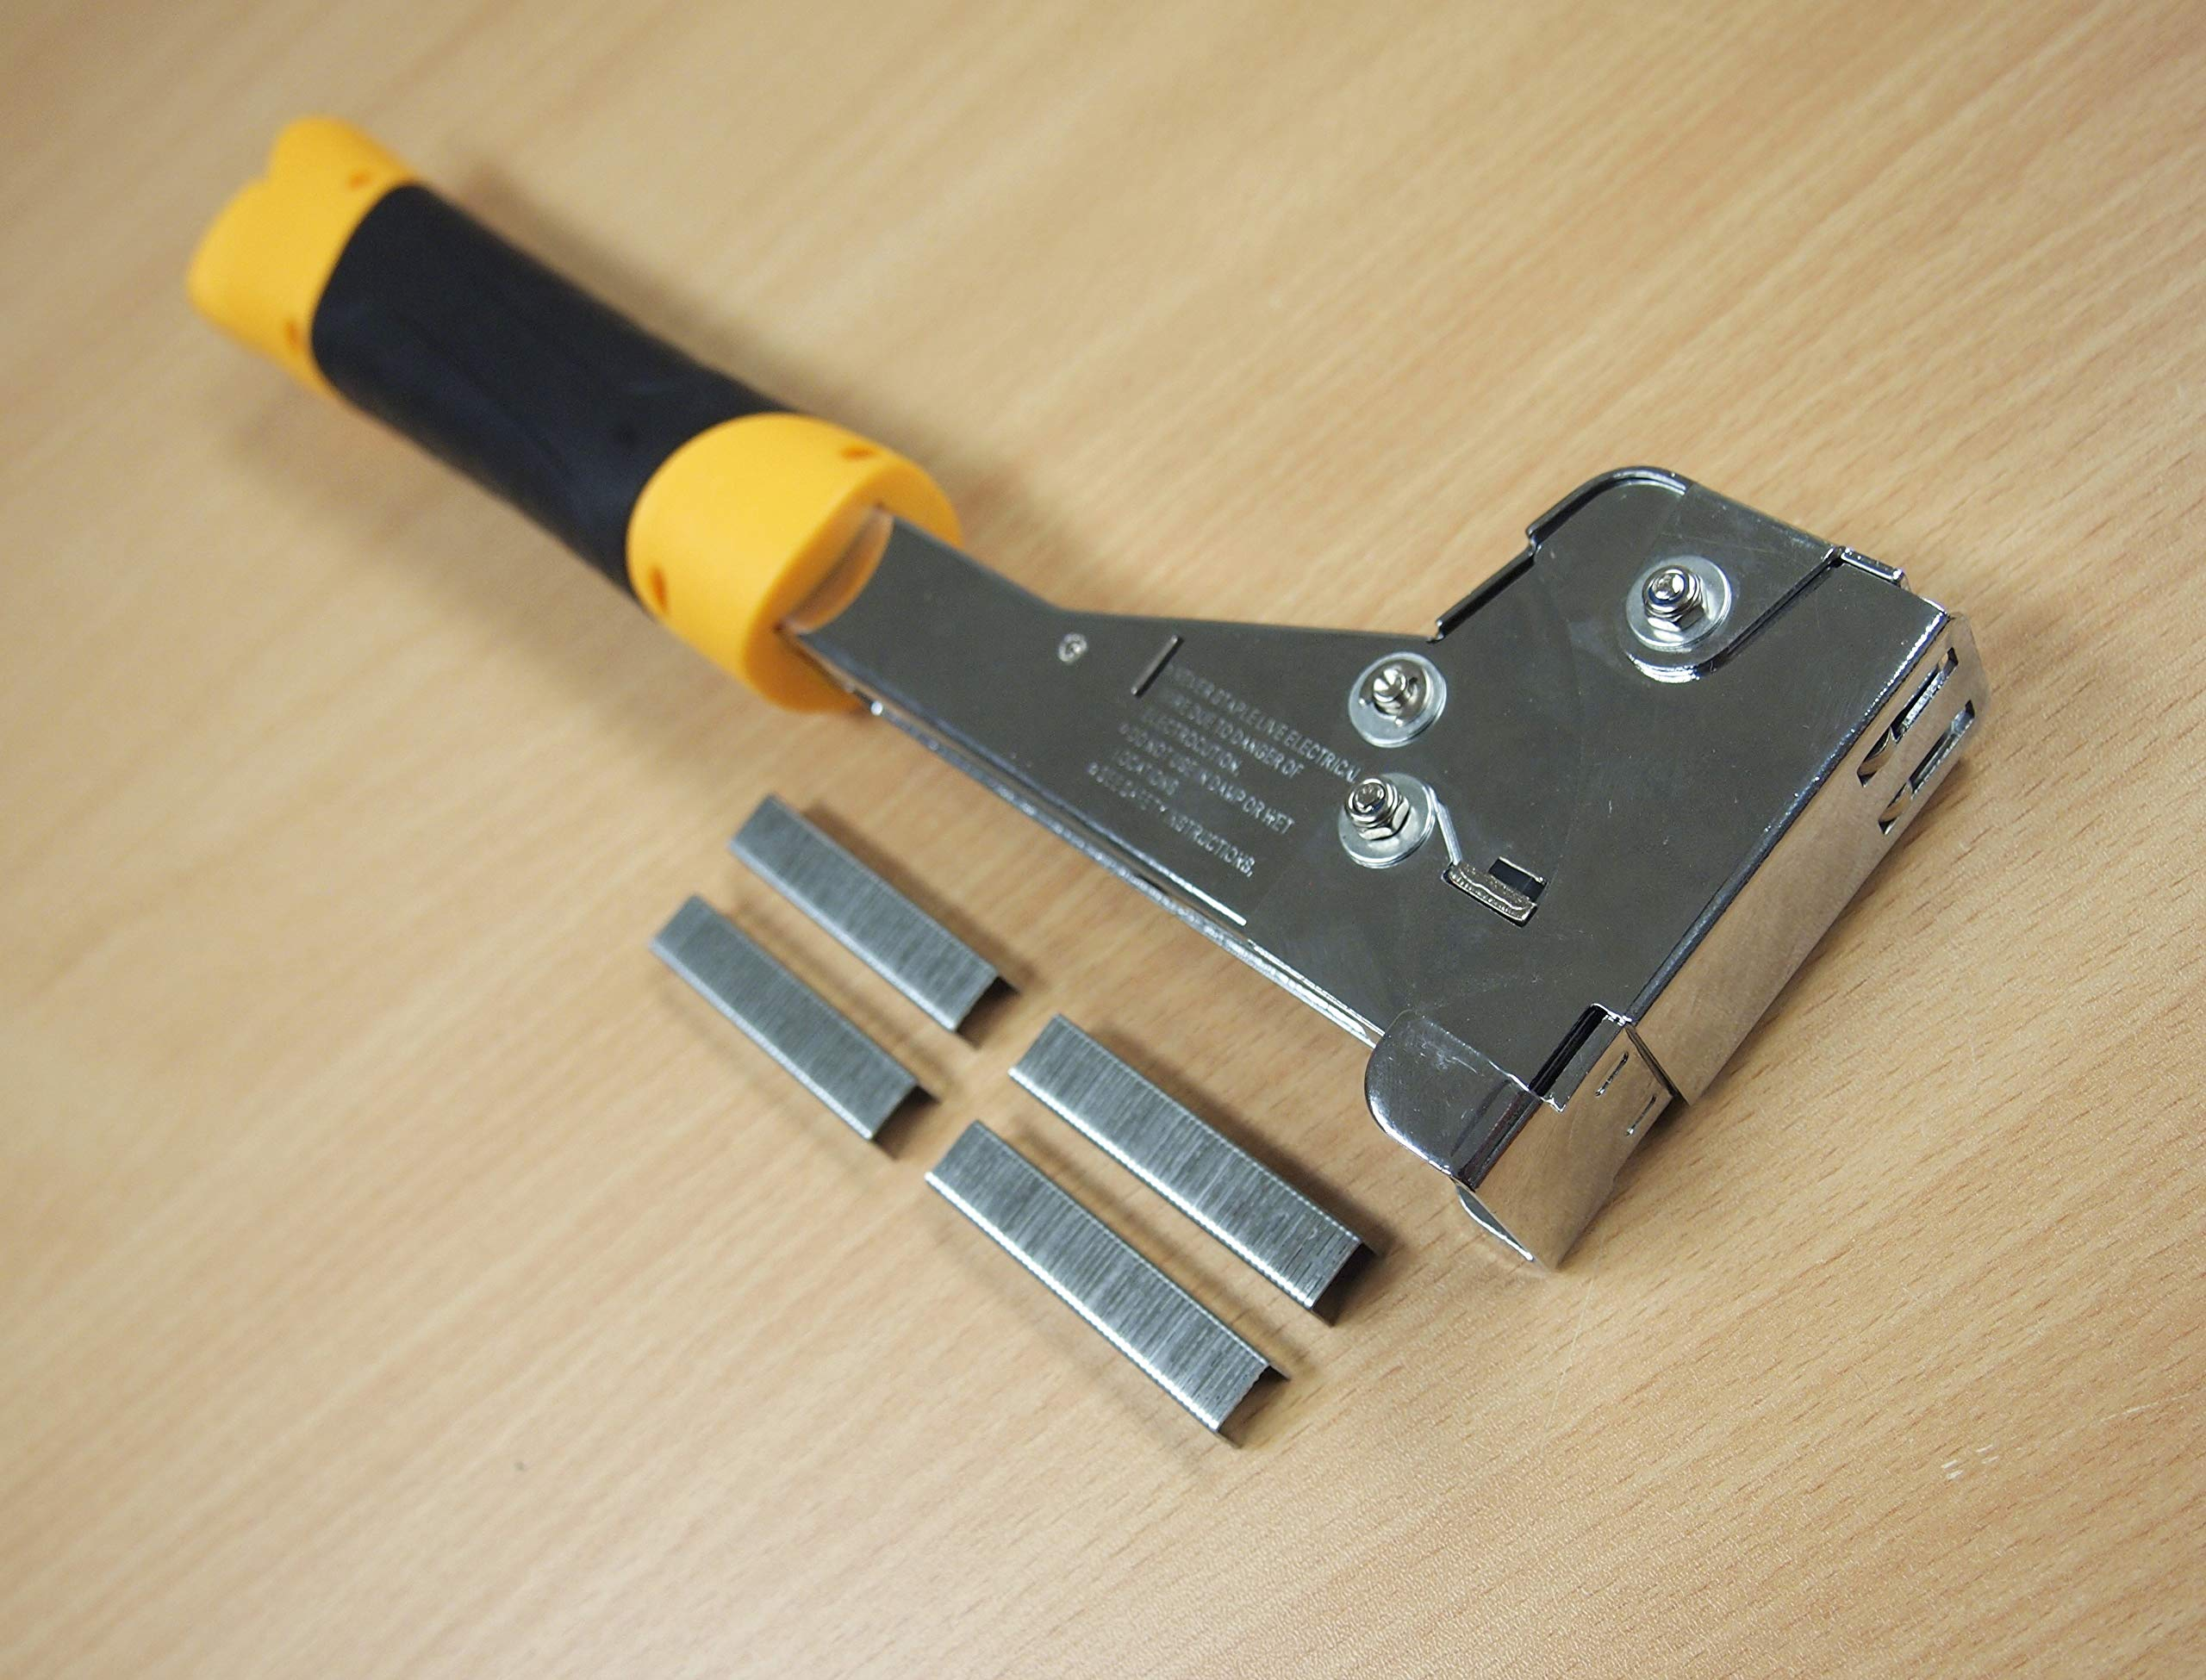 Heavy Duty Hammer Tacker Stapler T50 6-14mm 1/4'' to 9/16'' with 200 Staples by Hoteche